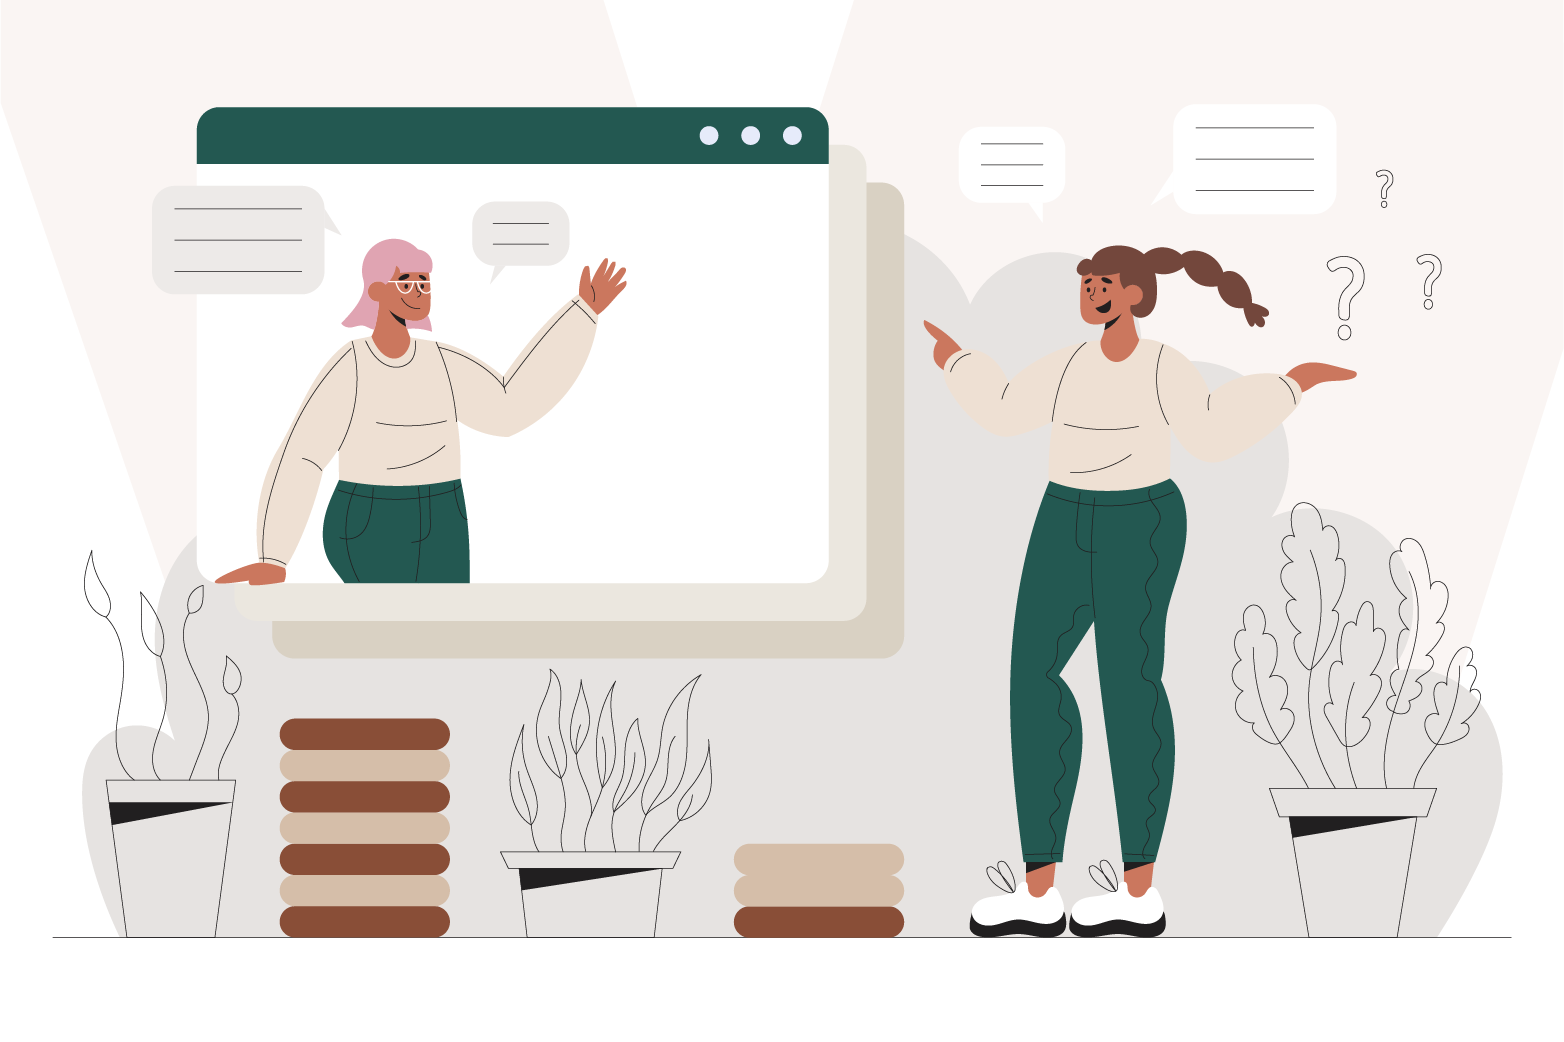 We decided to use a Human-Centred Design approach to redesign the mandatory training in my workplace. I had a chance to do around ten end-user interviews. Here are a few things I have learnt...